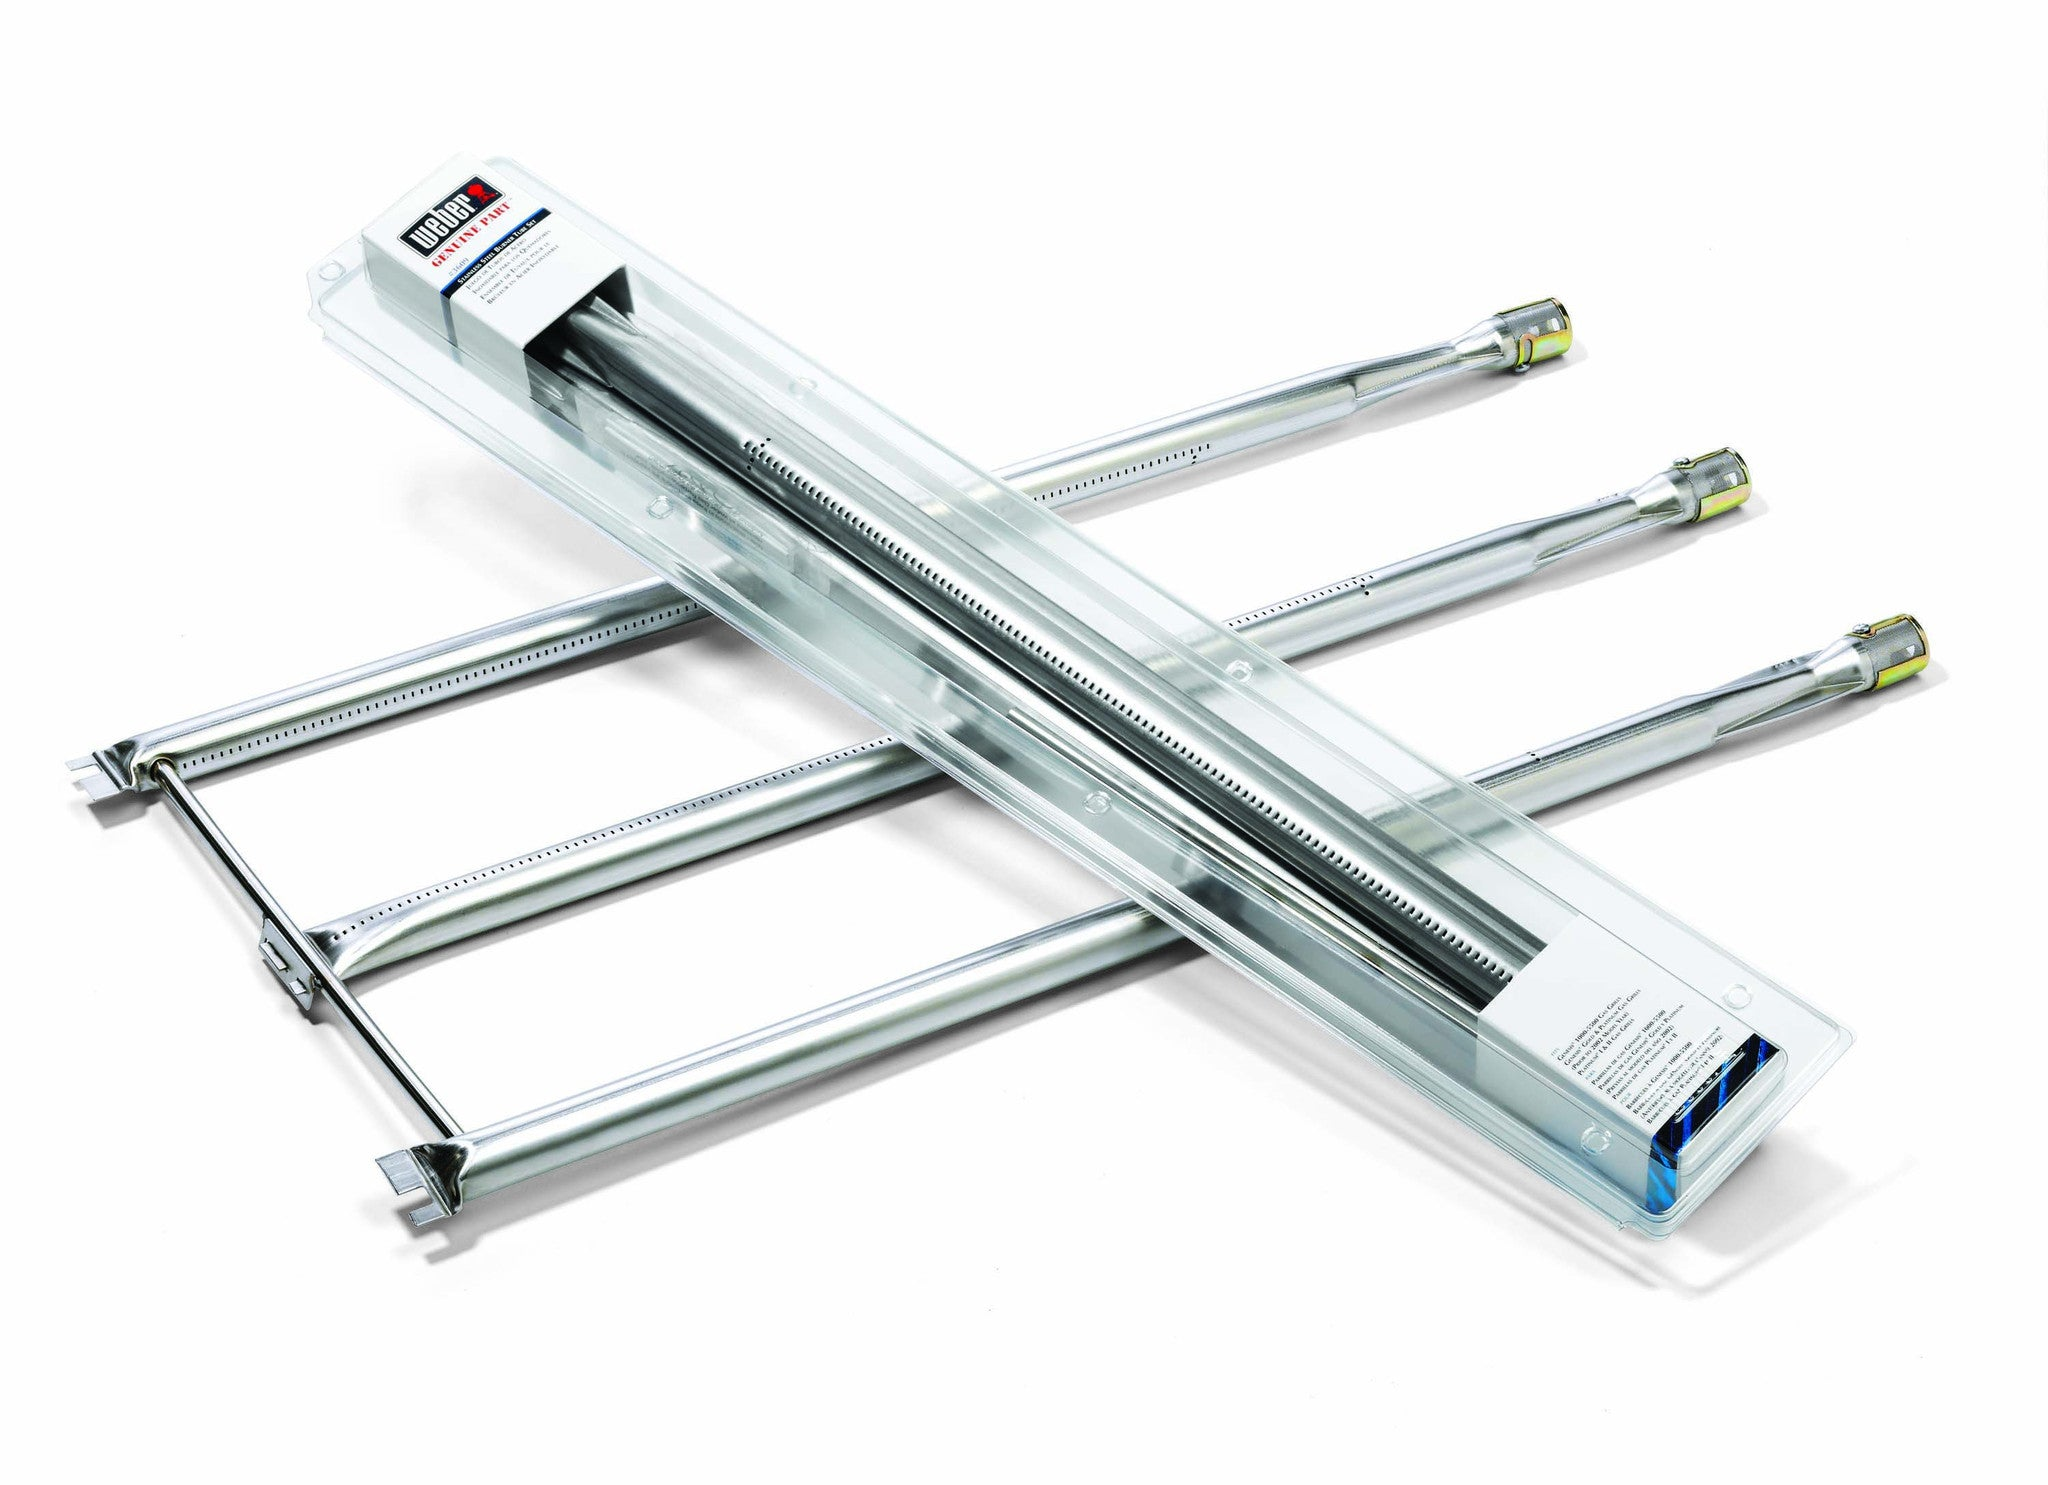 weber gas grill stainless steel burner tube set - Weber Gas Grill